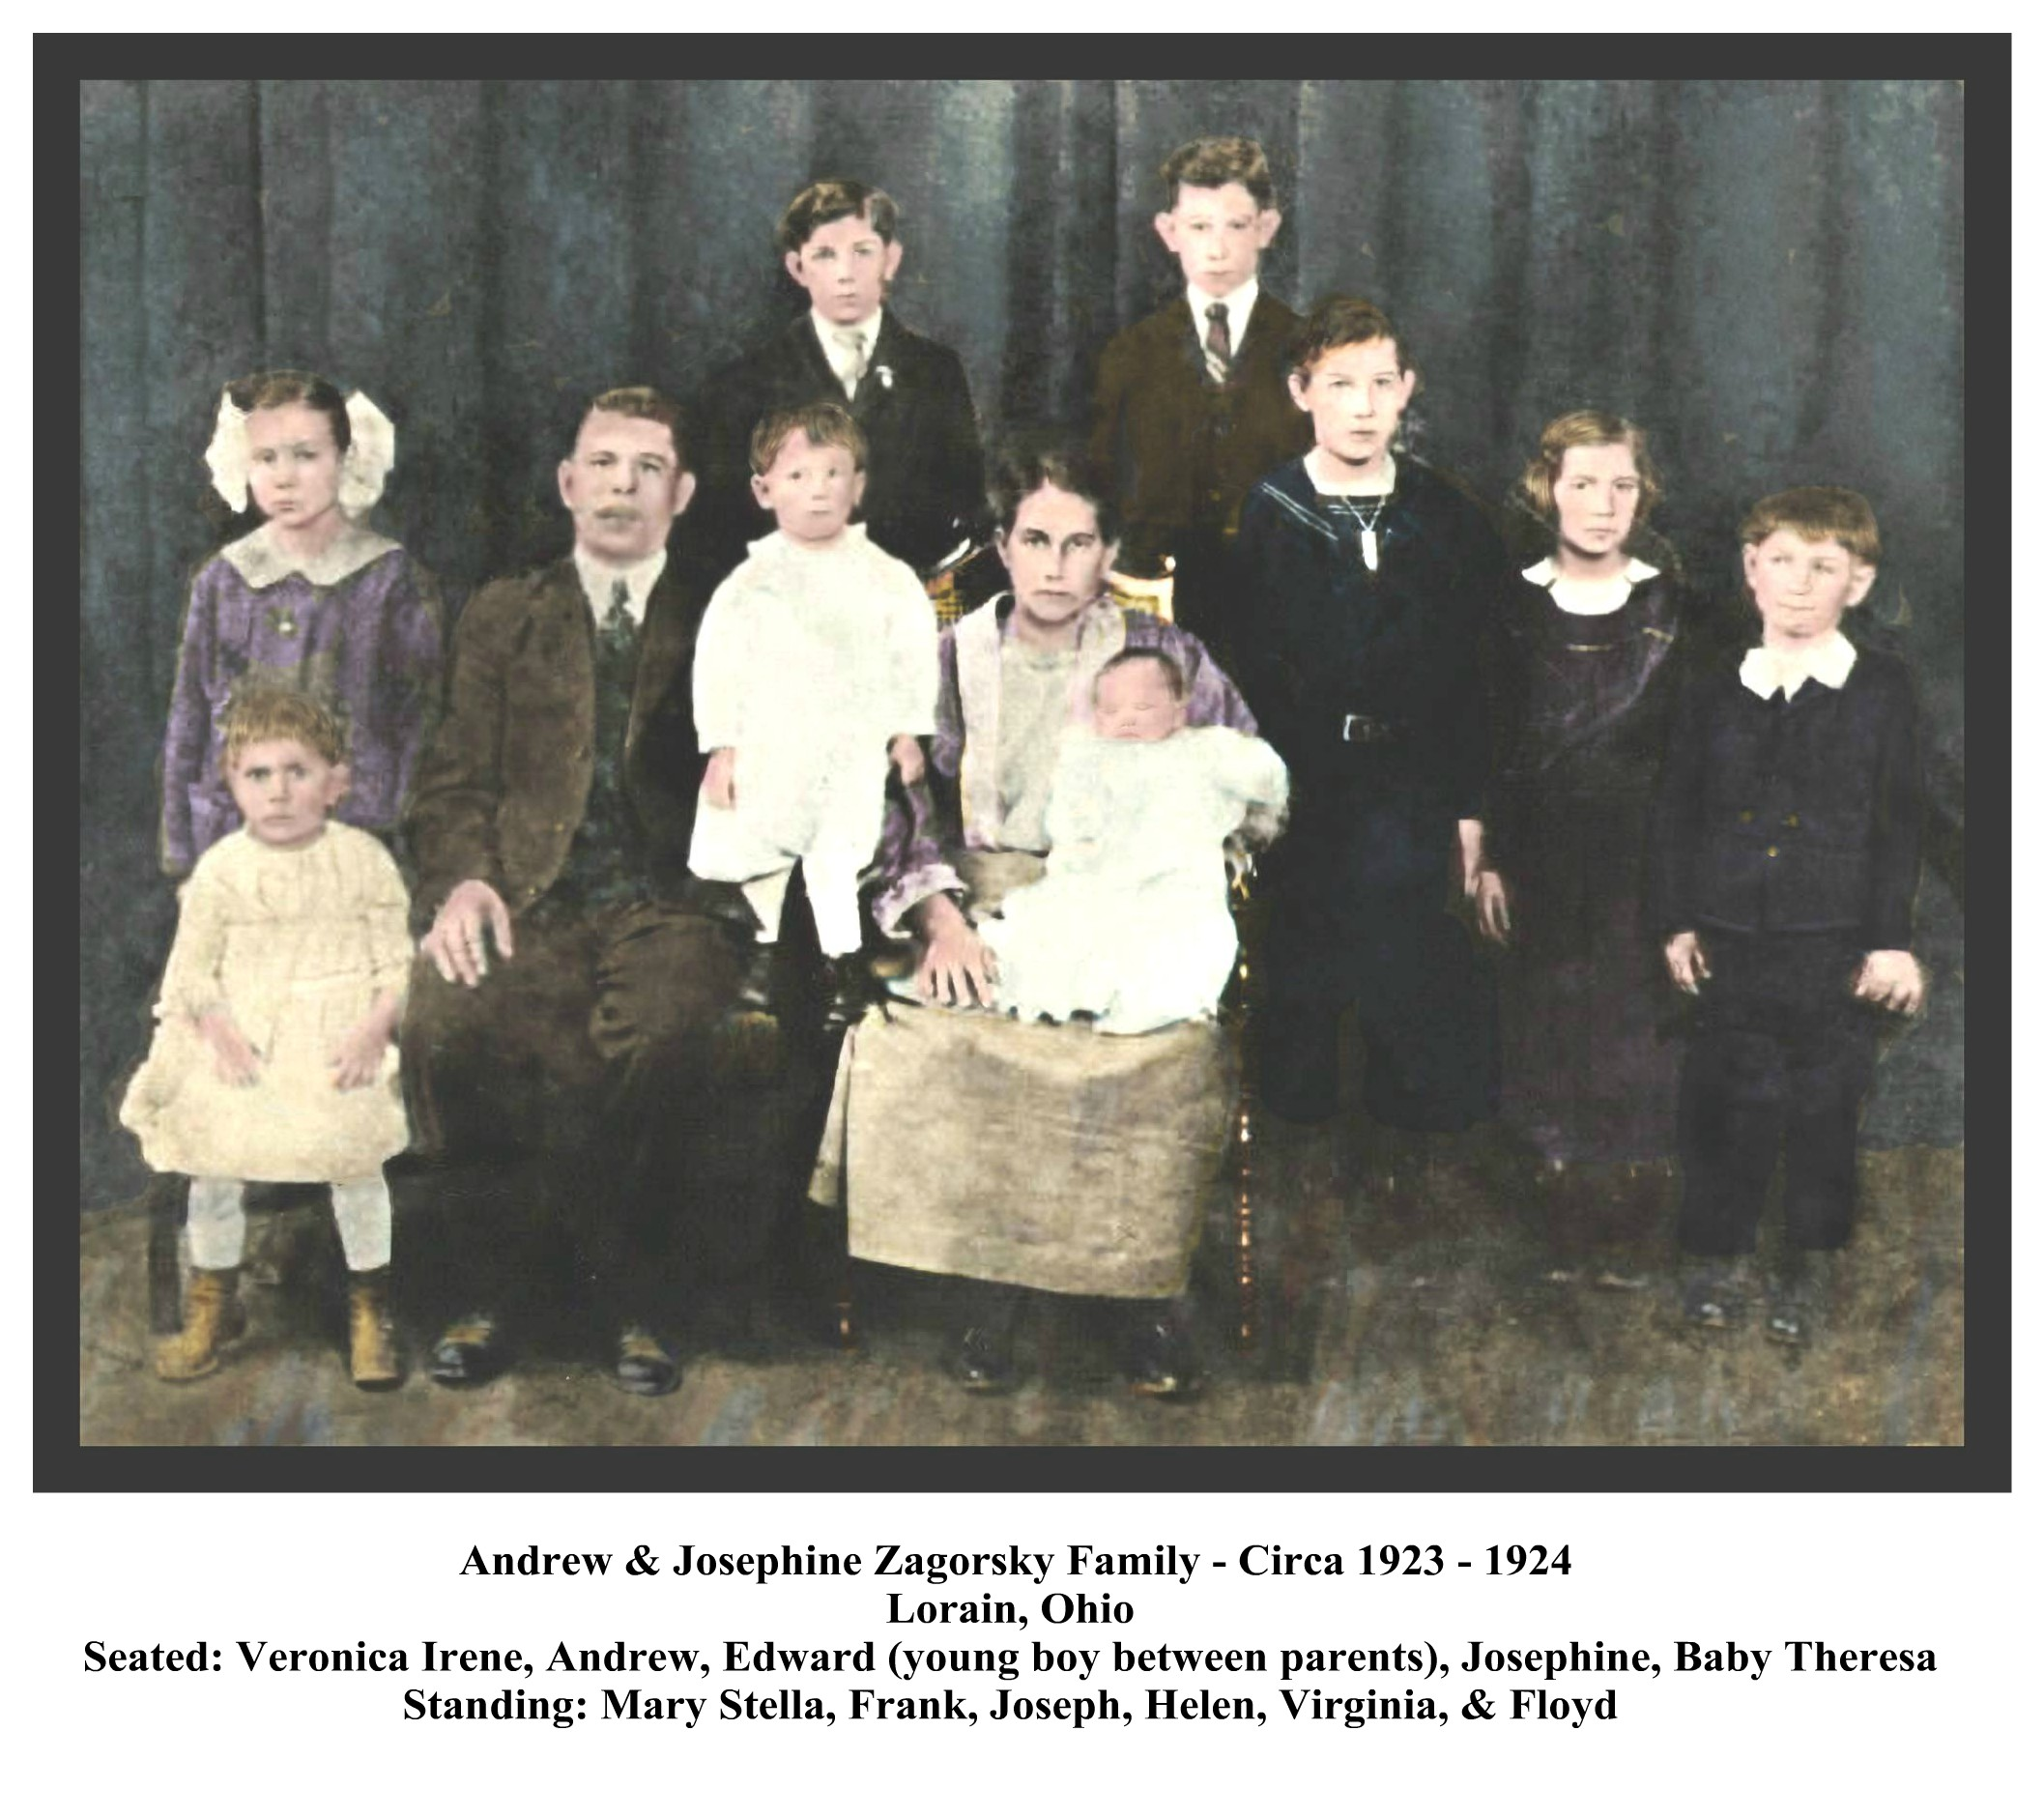 ANDREW AND JOSEPHINE ZAGORSKY FAMILY - CIRCA - 1923-1924 - WITH FRAME & TEXT - COLORIZED